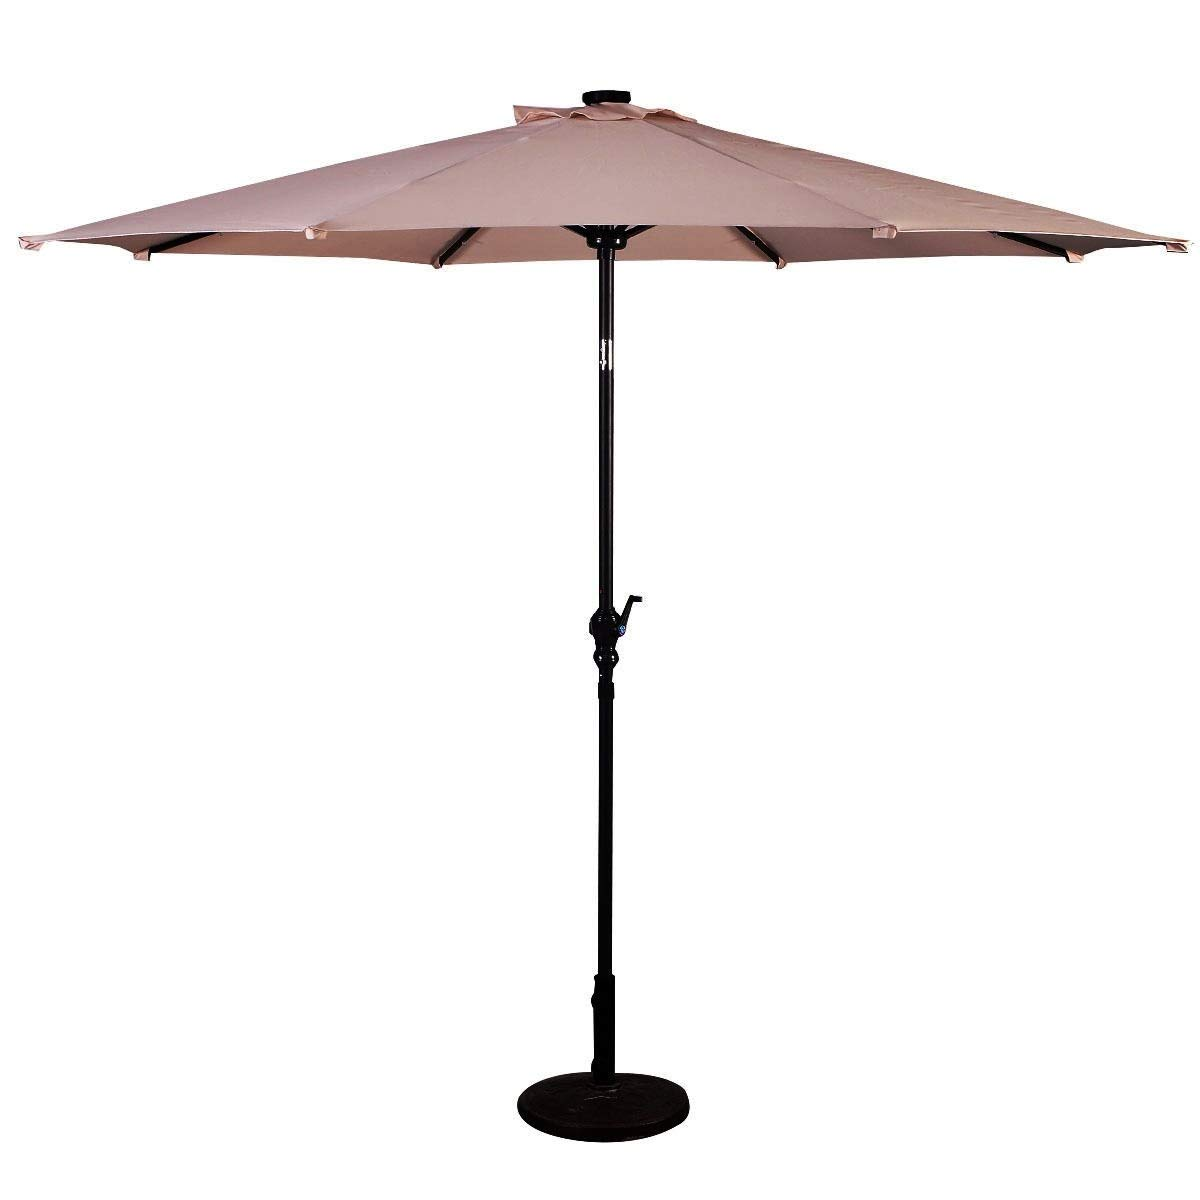 Lucky-gift - Beige 10 ft Patio Solar Umbrella with Crank and LED Lights Outdoor Umbrella with Lights - Outdoor Umbrellas Cover Uv Protecting Waterproof for Table with Led by Lucky-gift